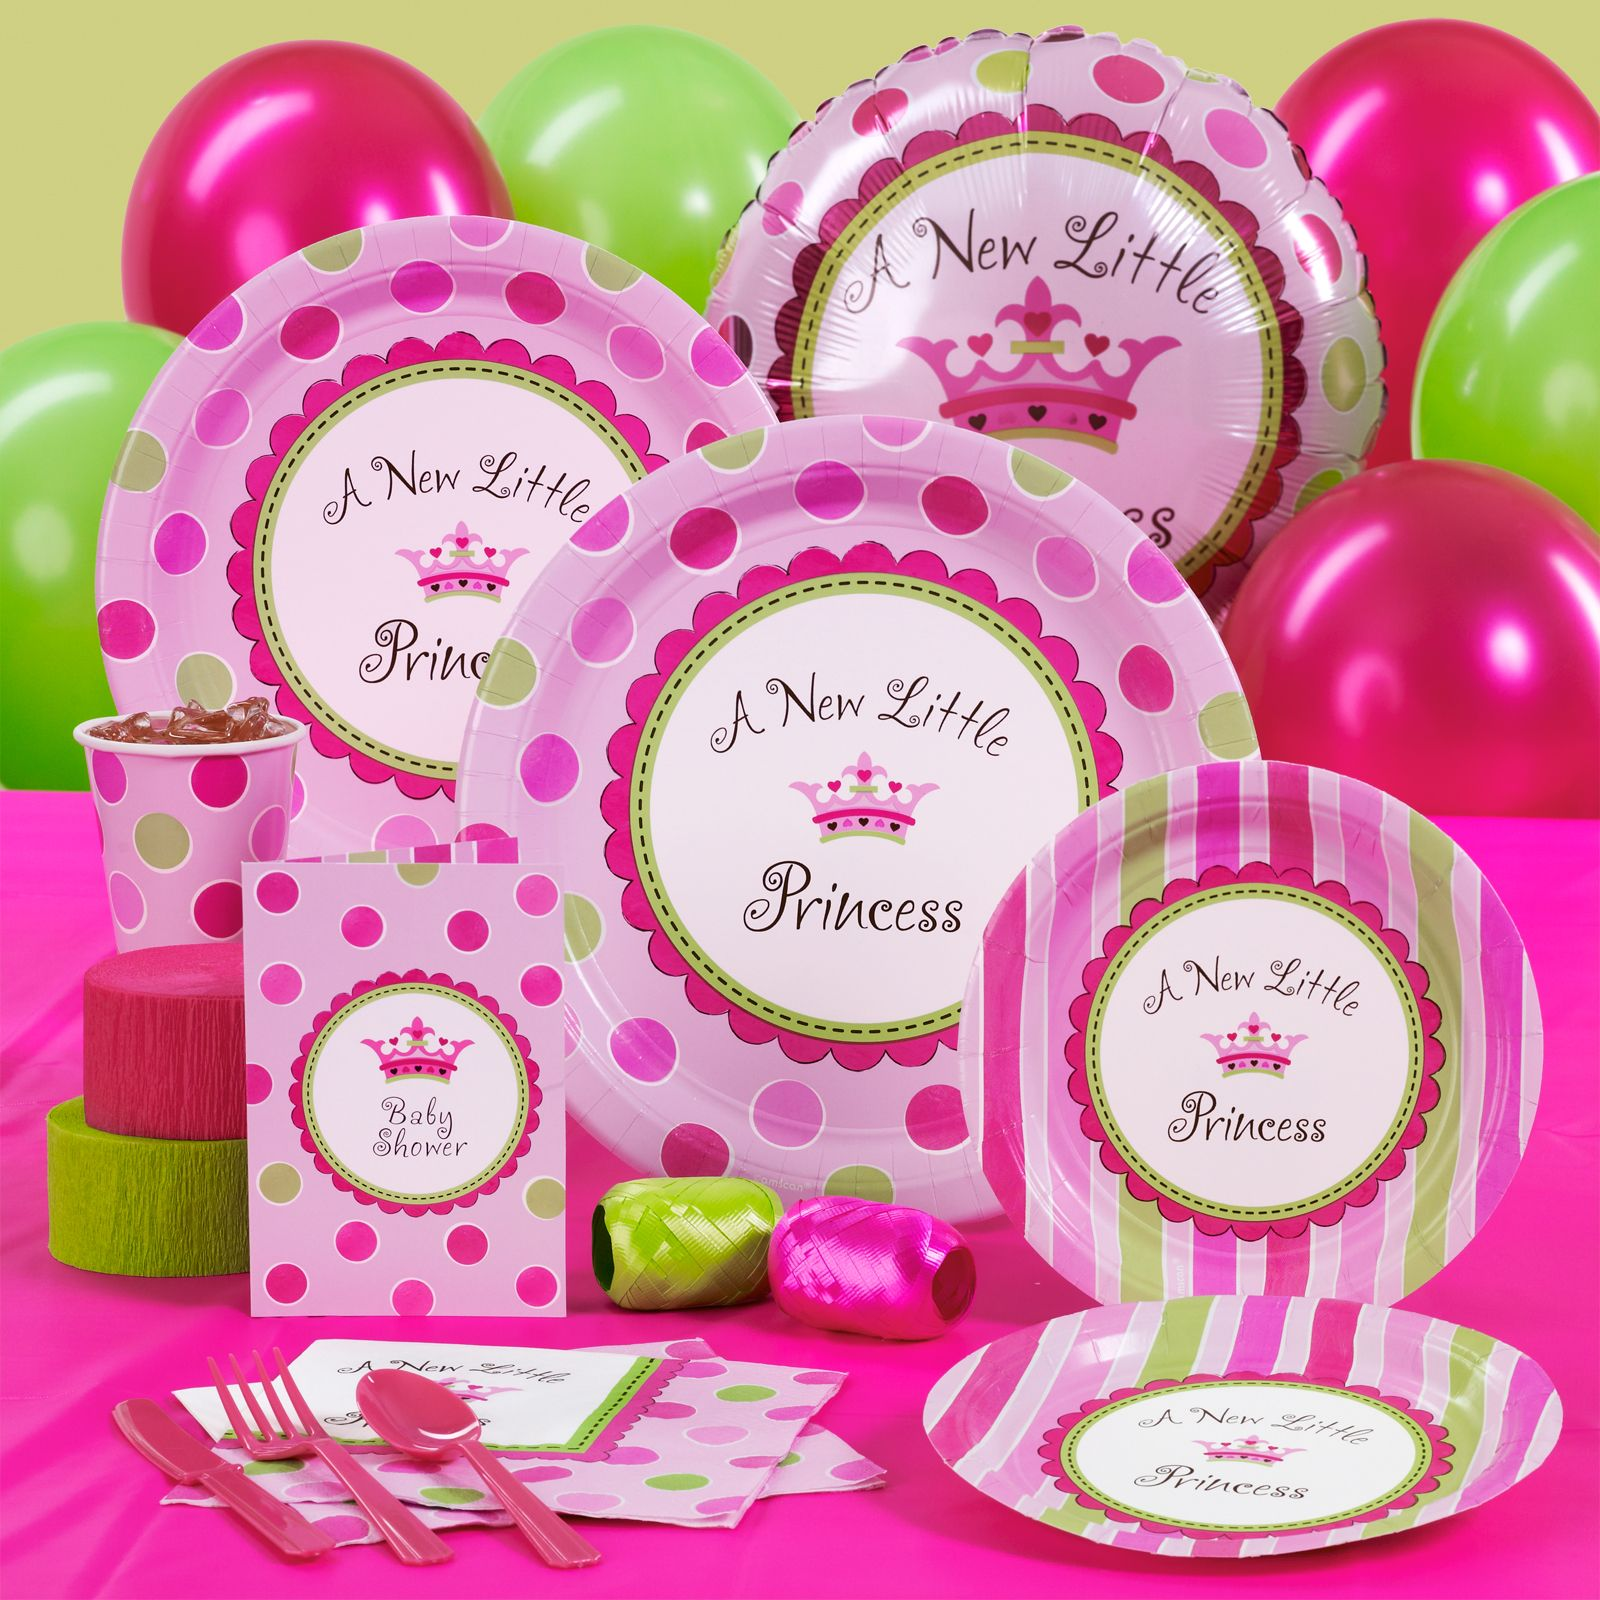 A New Little Princess Baby Shower Standard Party Pack for 16 | My ...